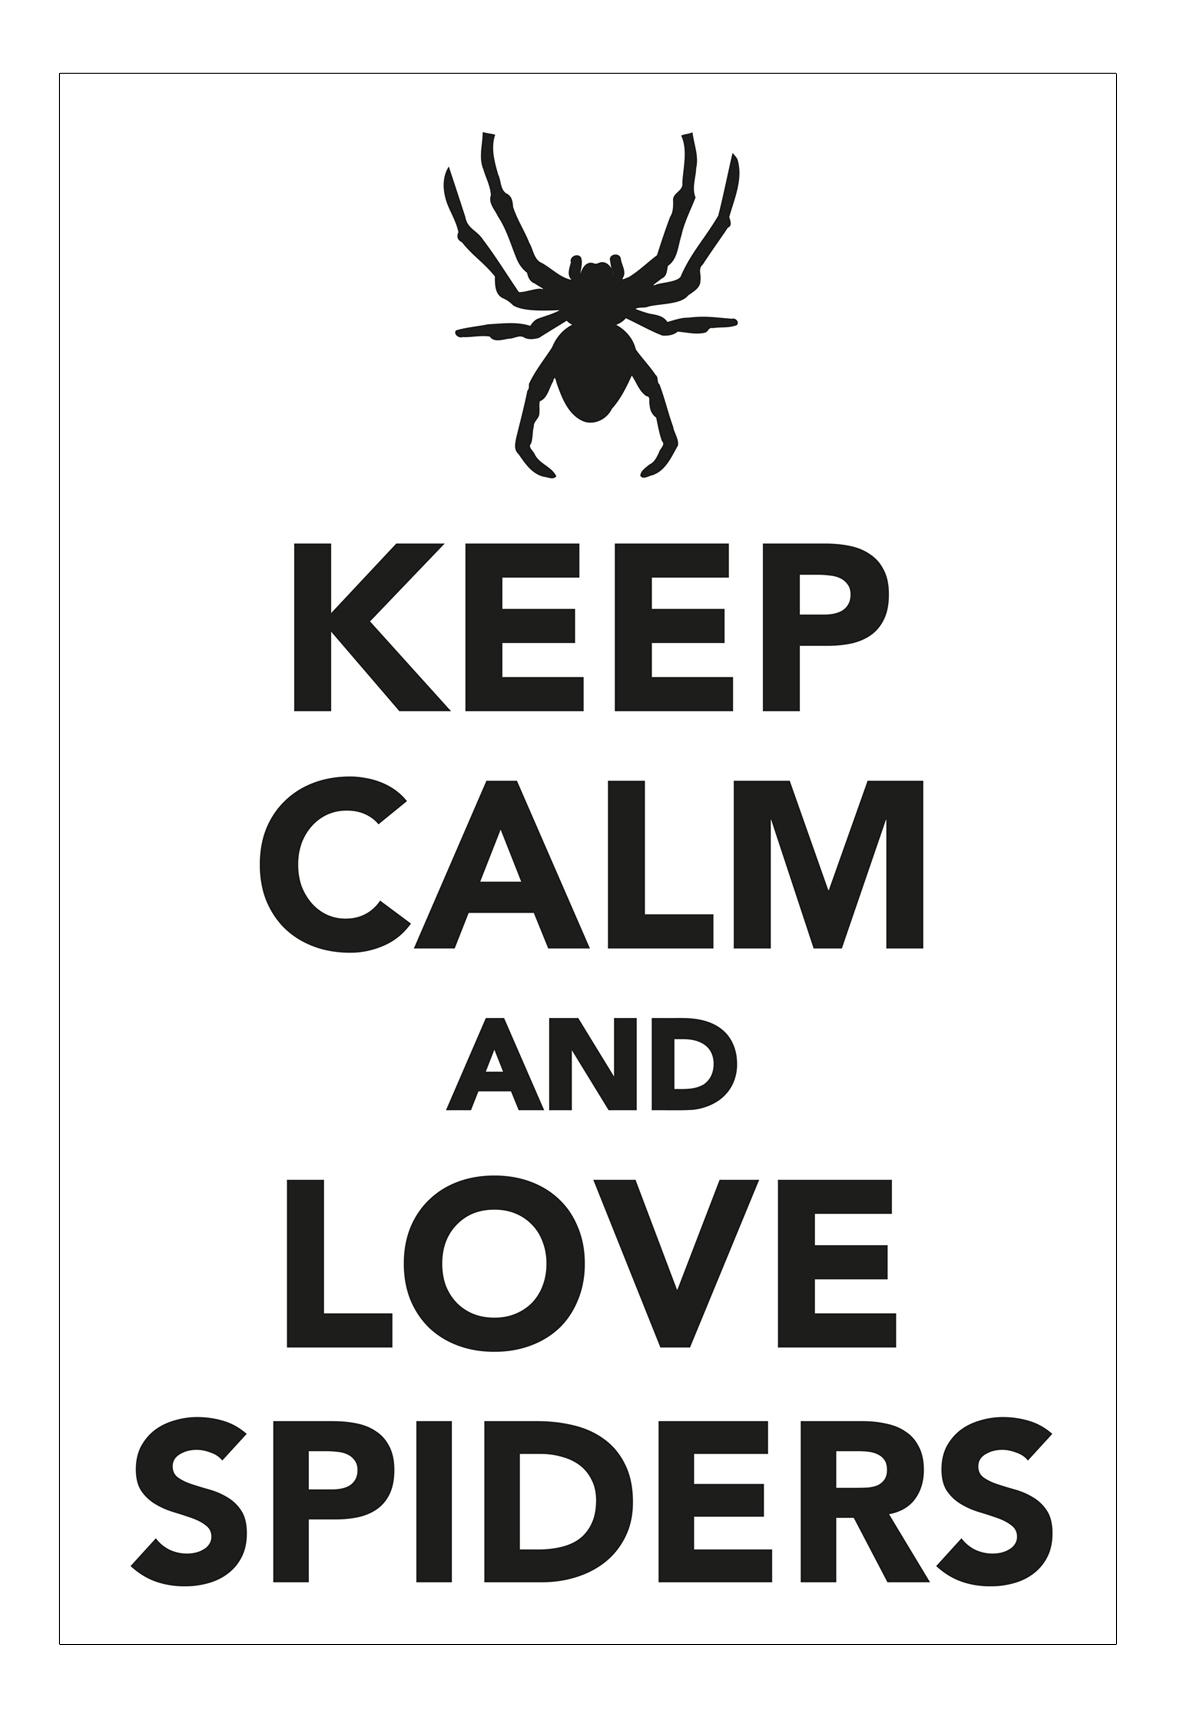 Keep calm and love spiders